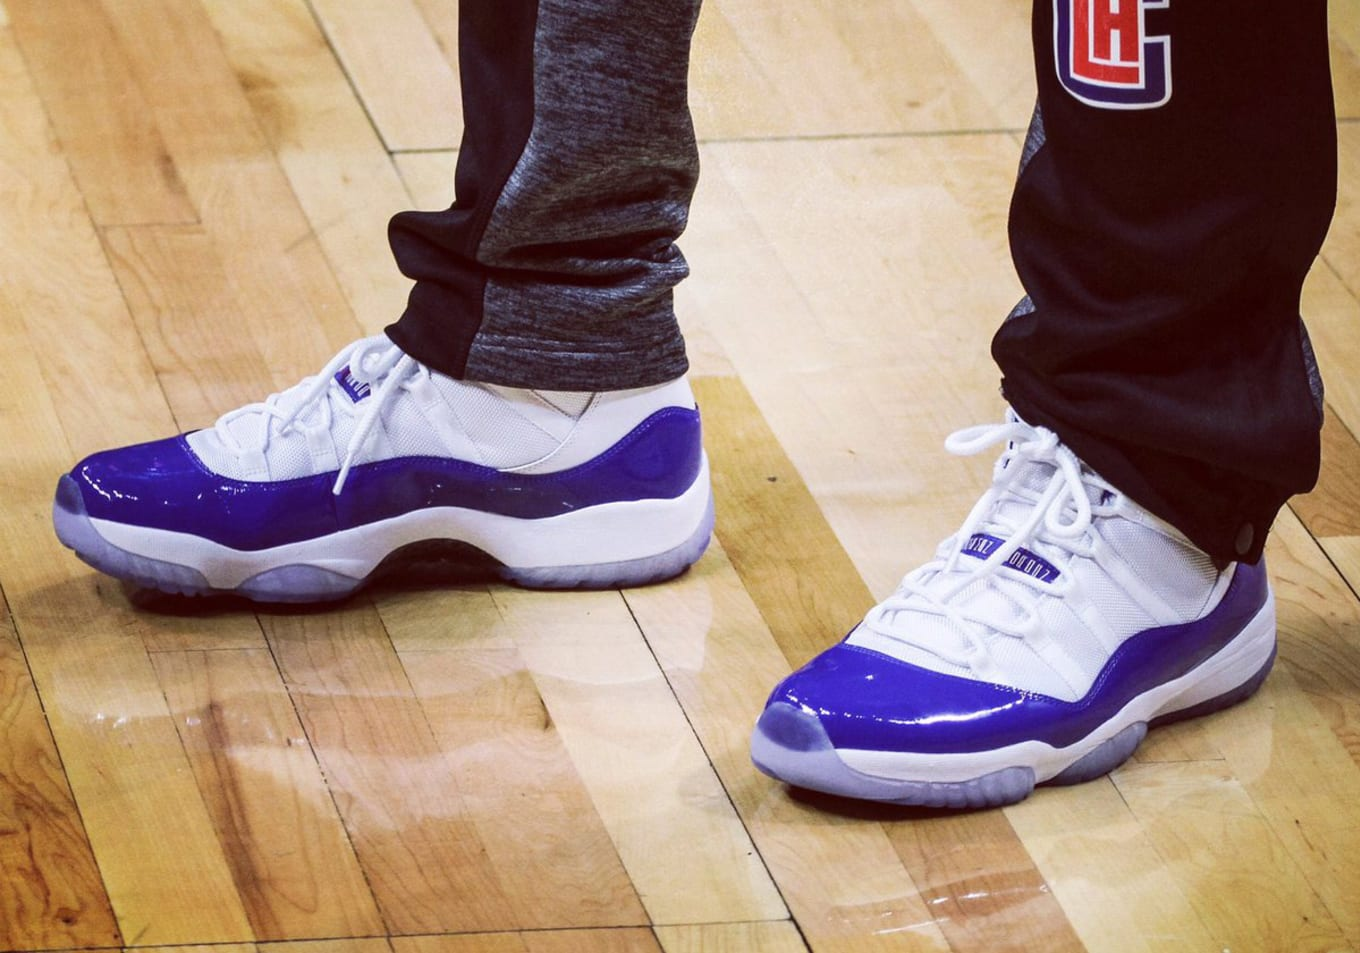 0390734af47e Only Chris Paul Has This Pair of Air Jordan 11s. Another special pair of  Jordans for CP3.